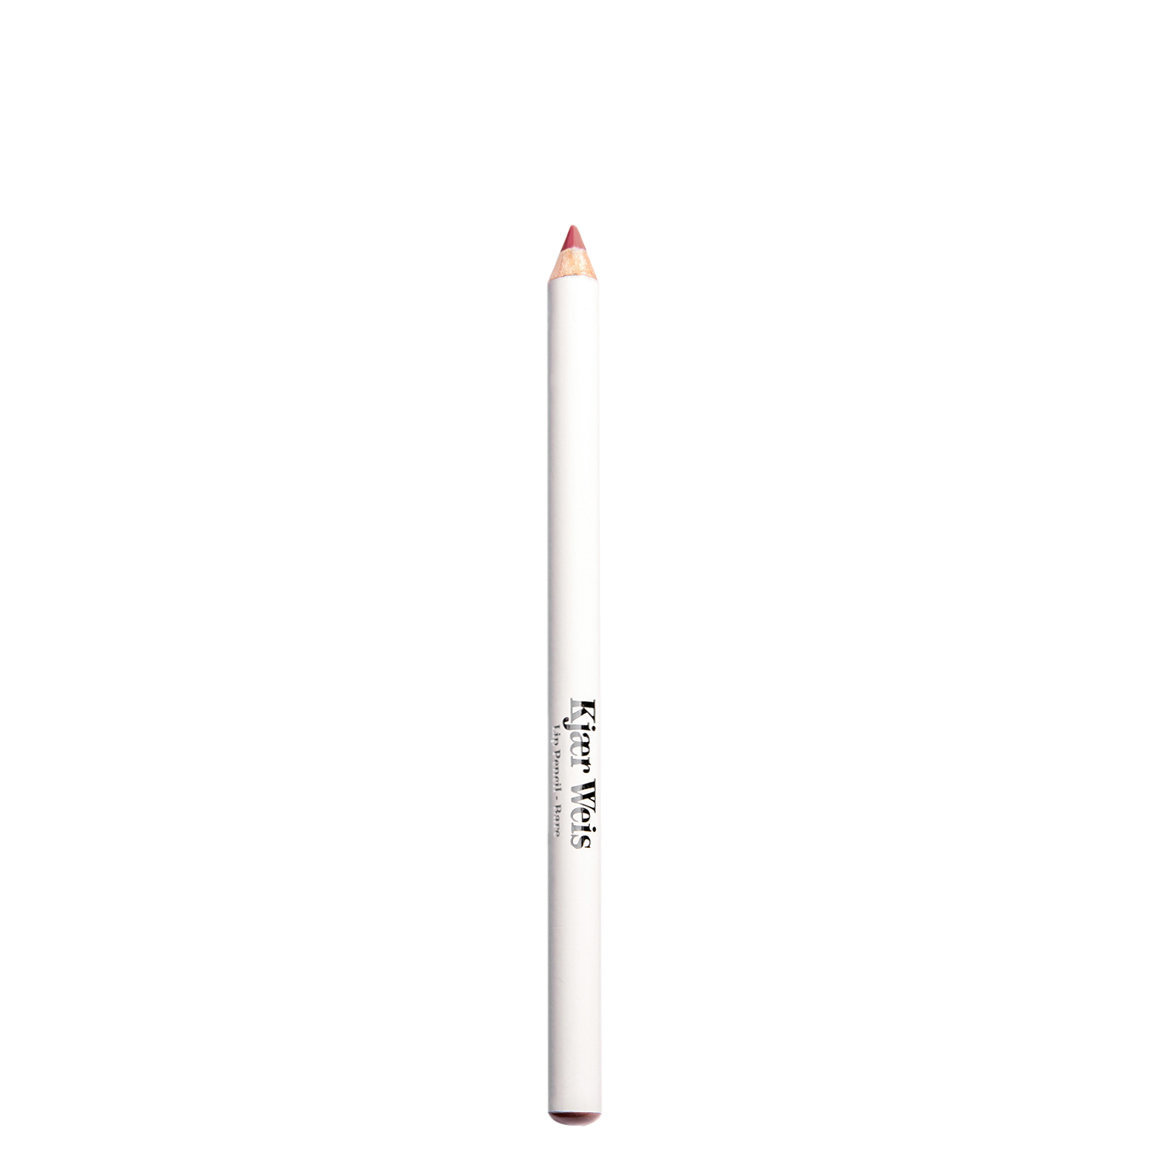 Kjaer Weis Lip Pencil Bare alternative view 1.